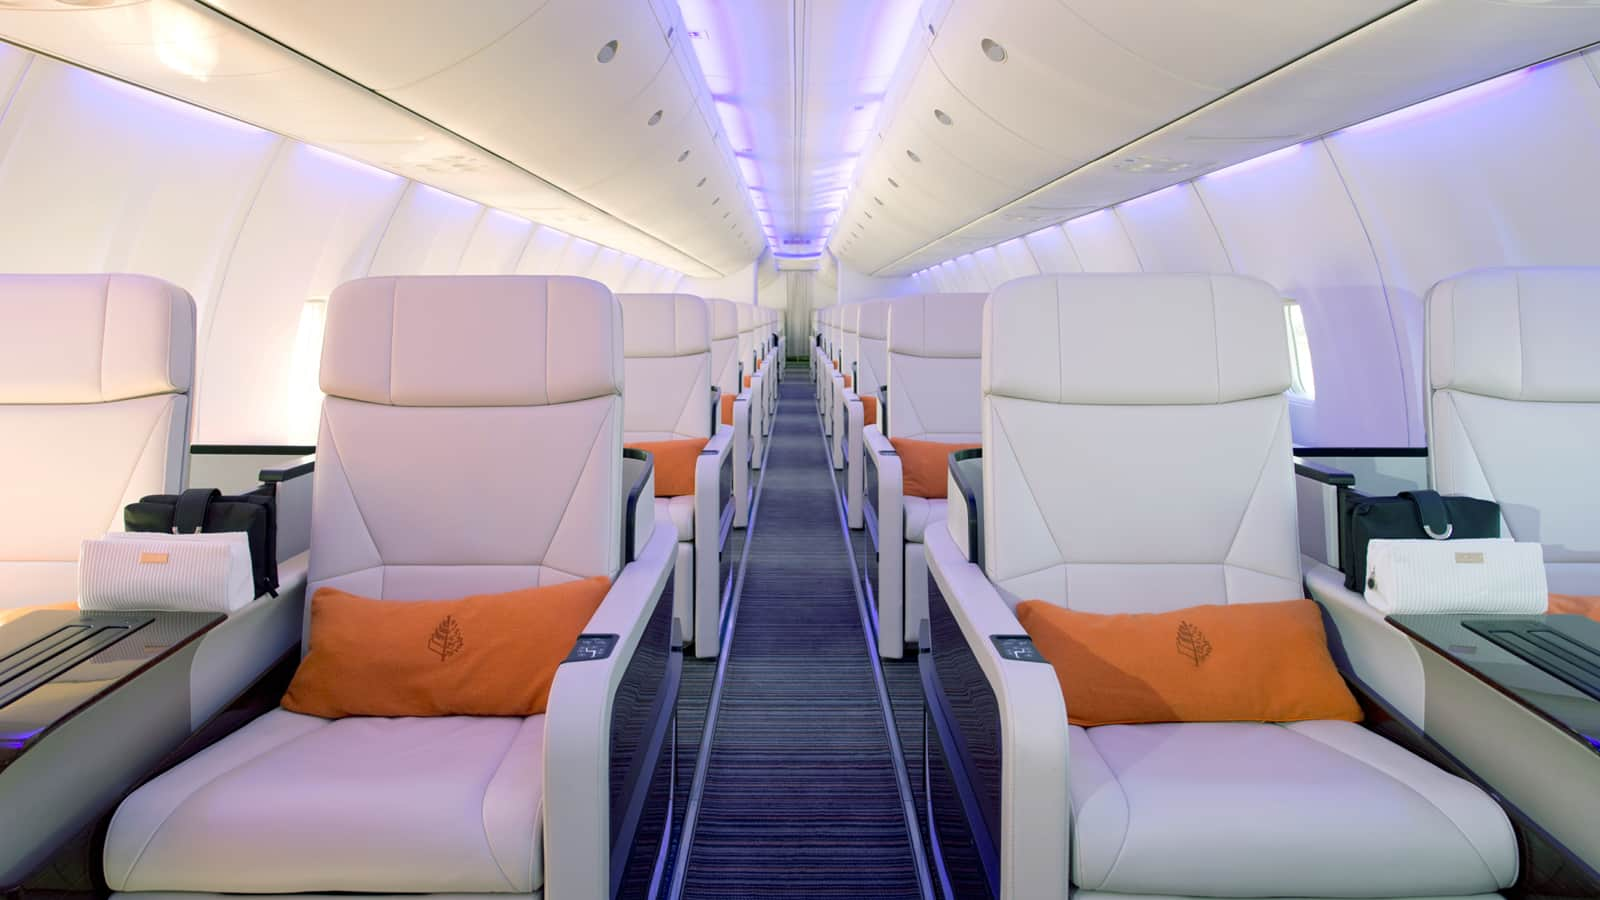 The Four Seasons Private Jet Is A Luxury Hotel In The Sky